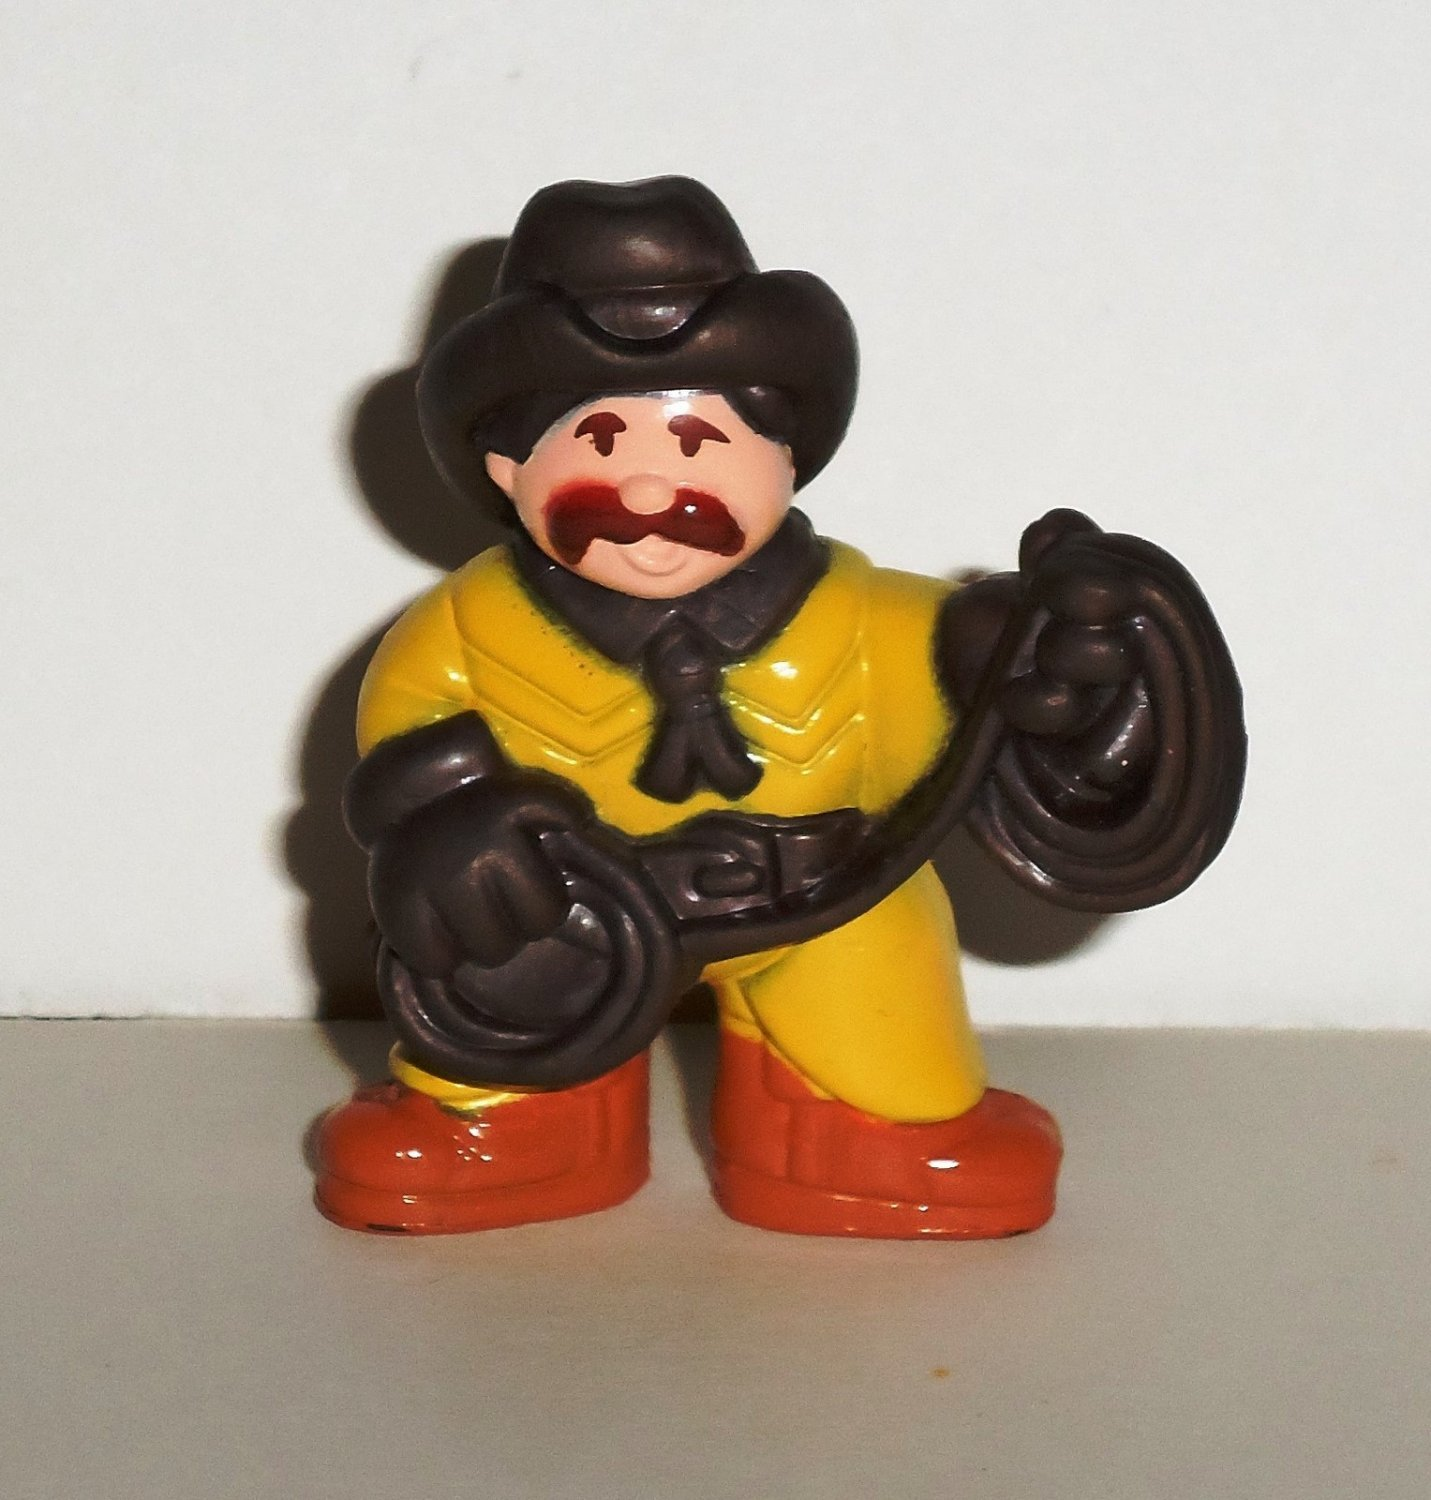 Lincoln Logs Cowboy in Yellow Outfit with Rope PVC Figure Loose Used